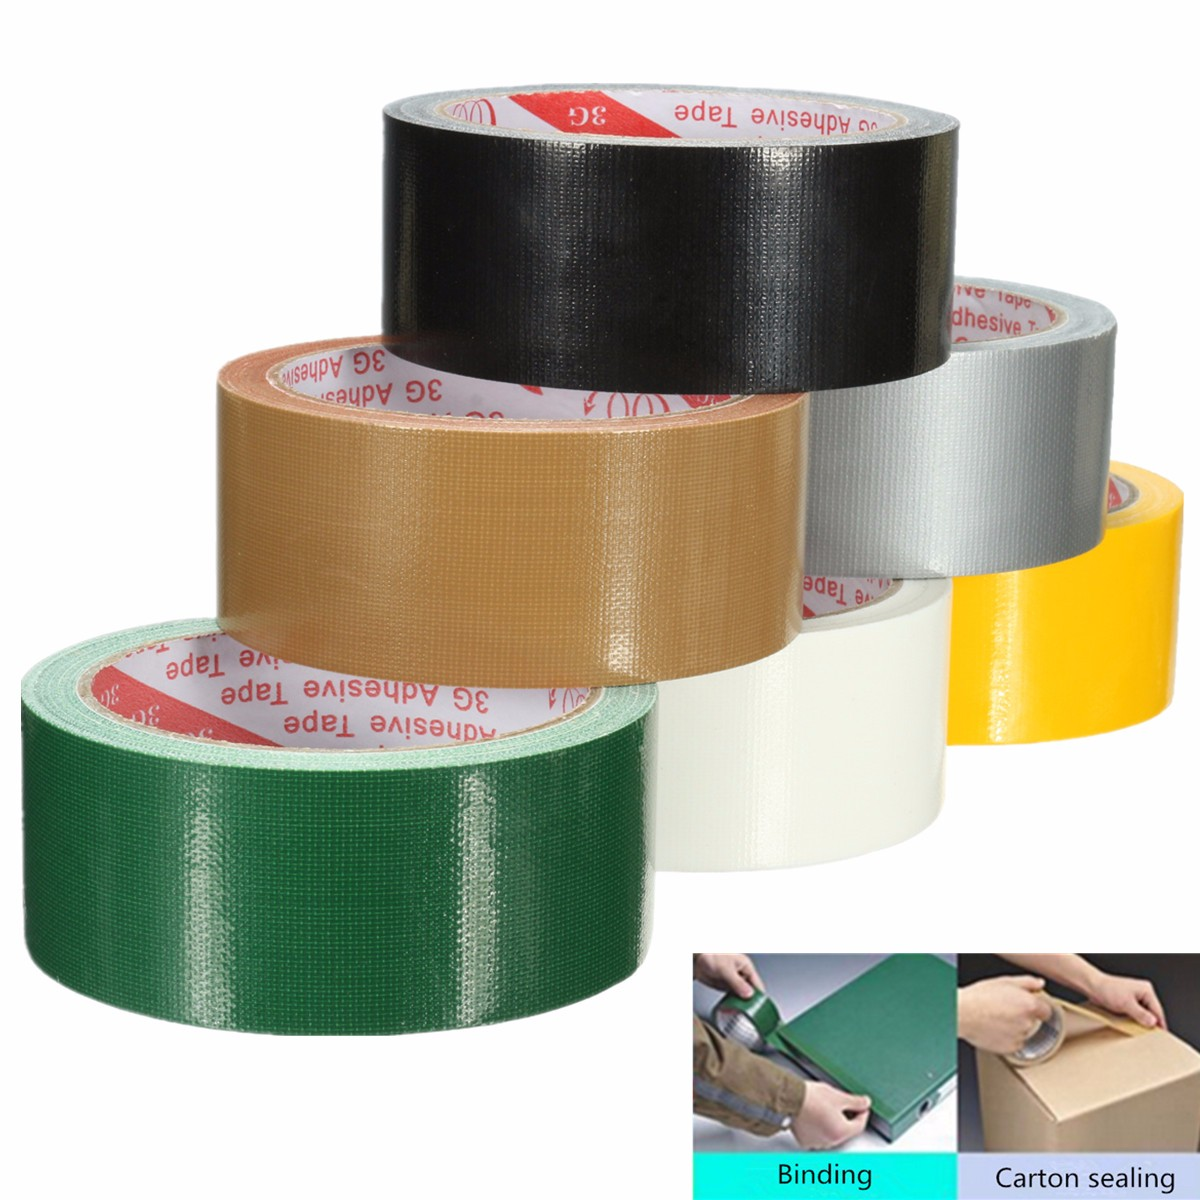 1Pcs Waterproof Adhesive Cloth Performance Repair Tape Self Adhesive Tape Packaging Tape Duct Pipe Wrap Carpet glueamptape Fixing Insulating